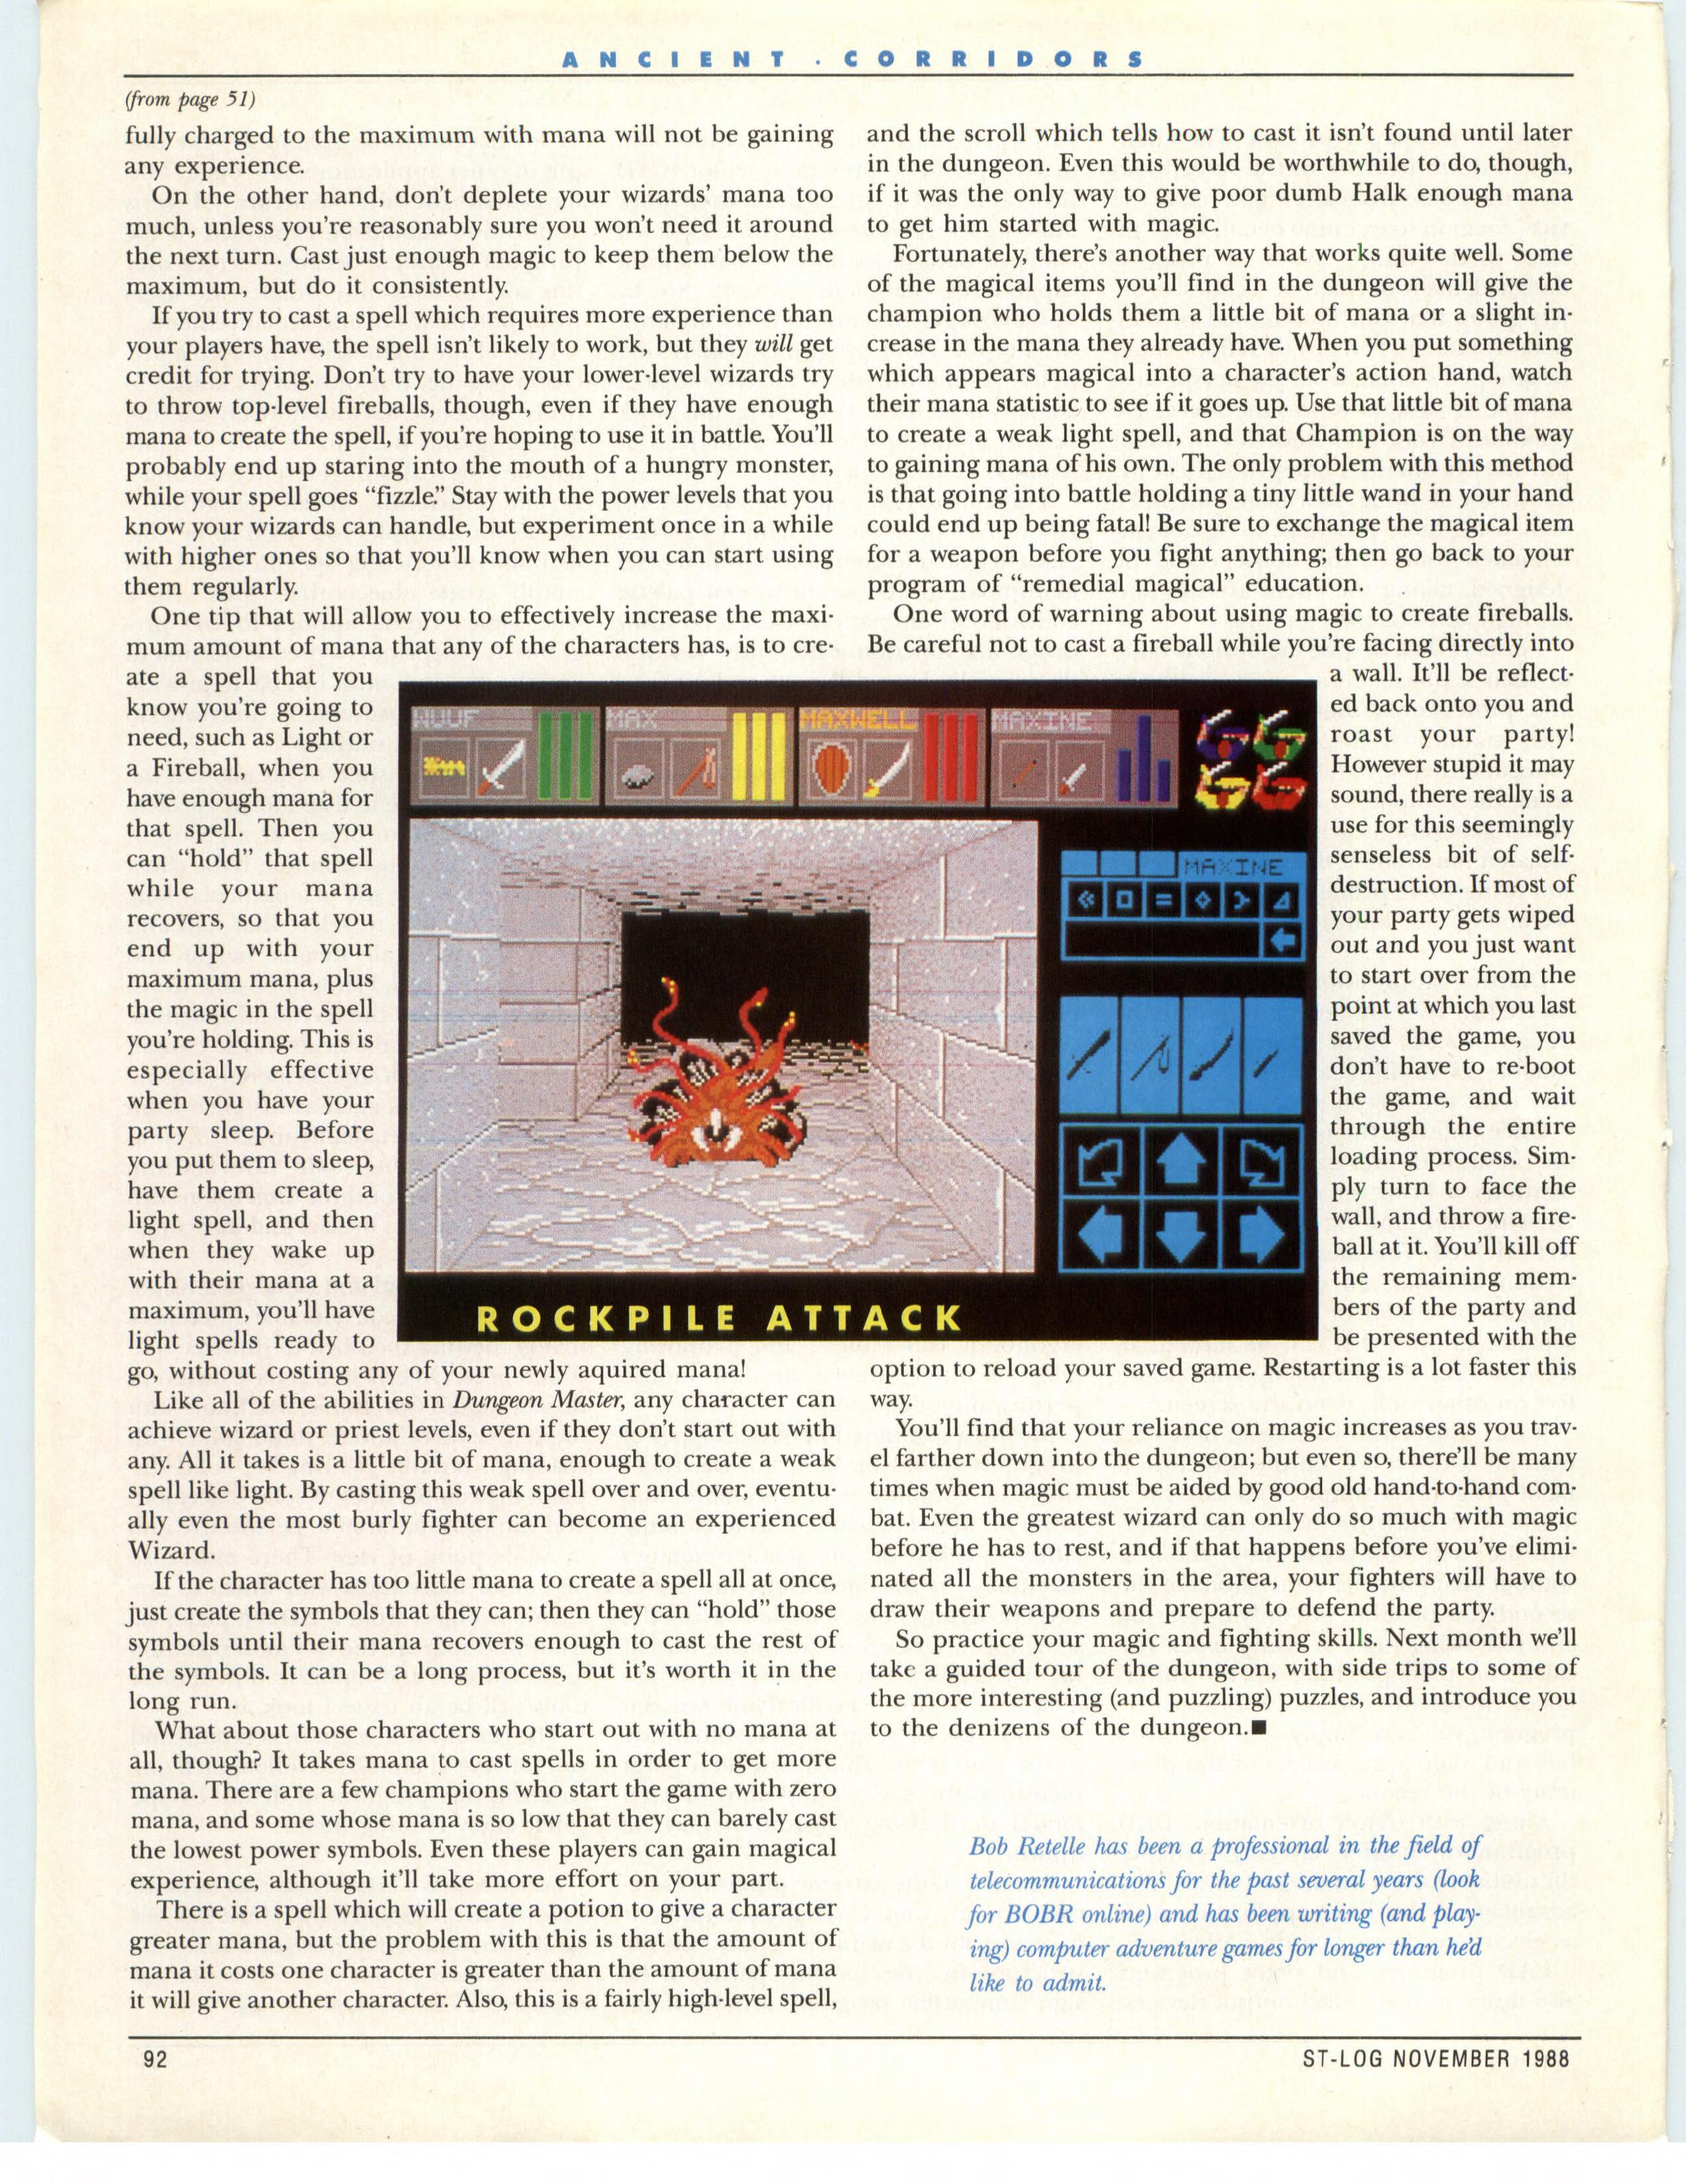 Dungeon Master for Atari ST Guide published in American magazine 'ST-Log', Issue #25 November 1988, Page 92